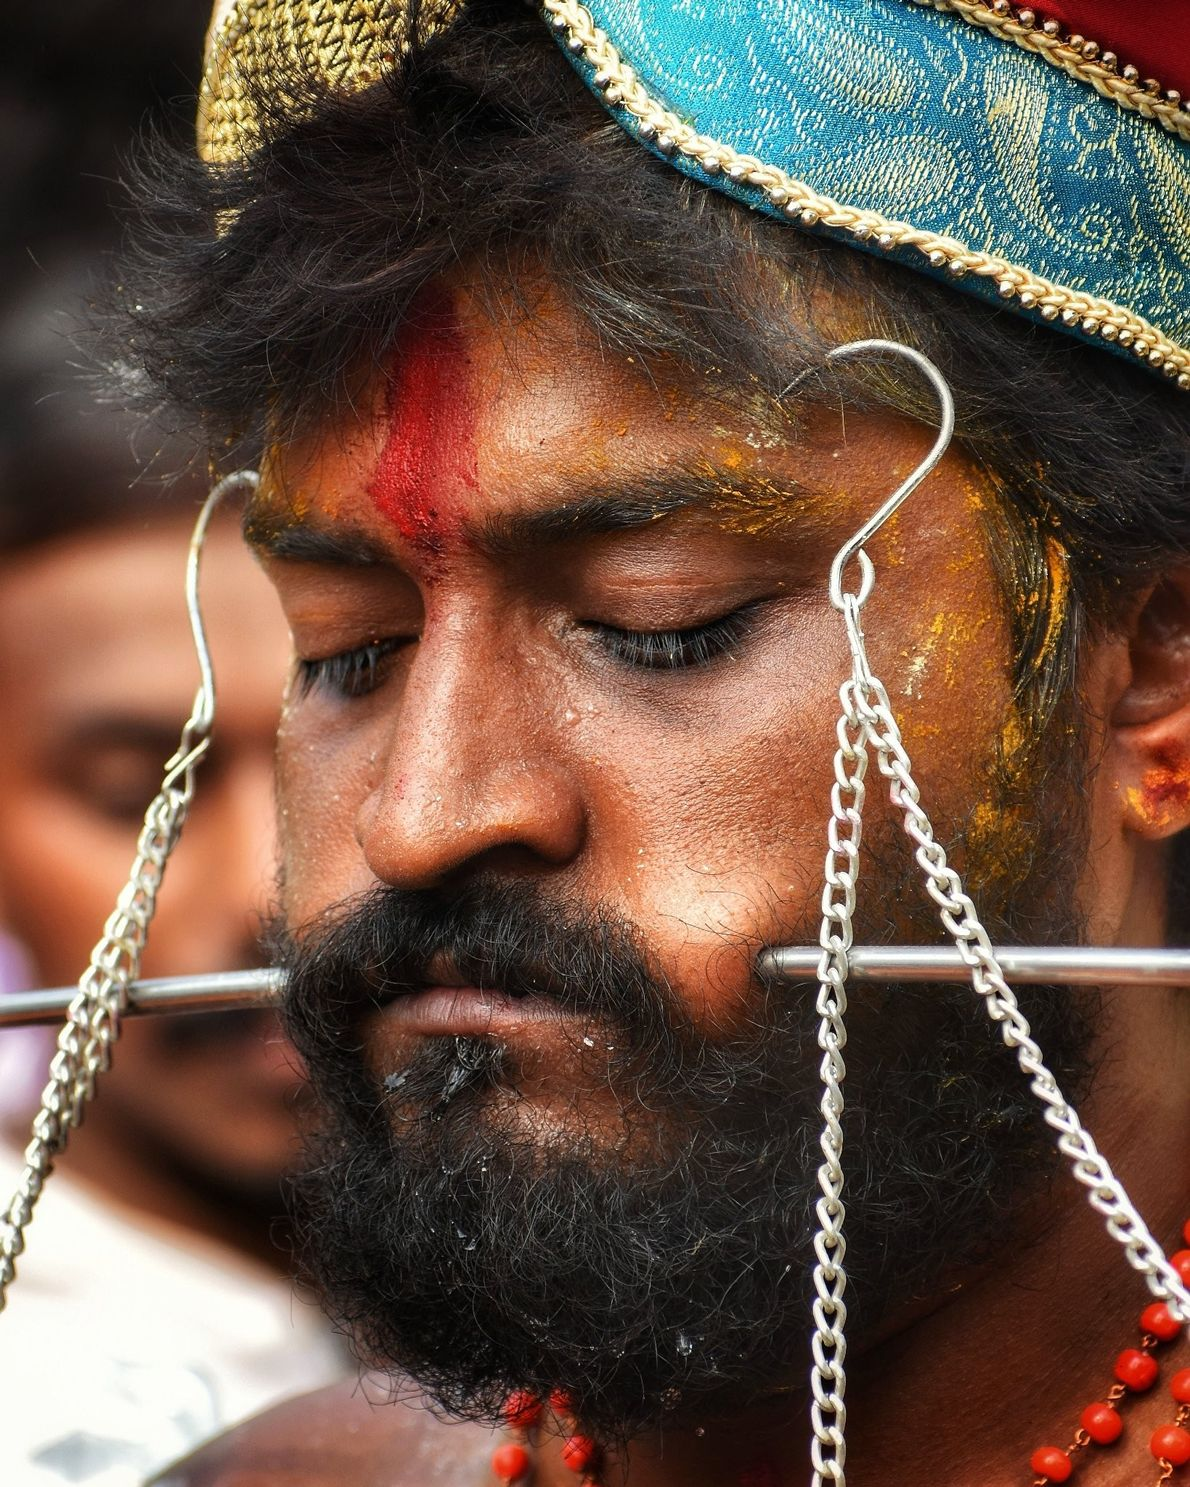 Your Shot photographer Asamanj Maiti photographed this devotee participating in the Vel Festival in West Bengal, ...